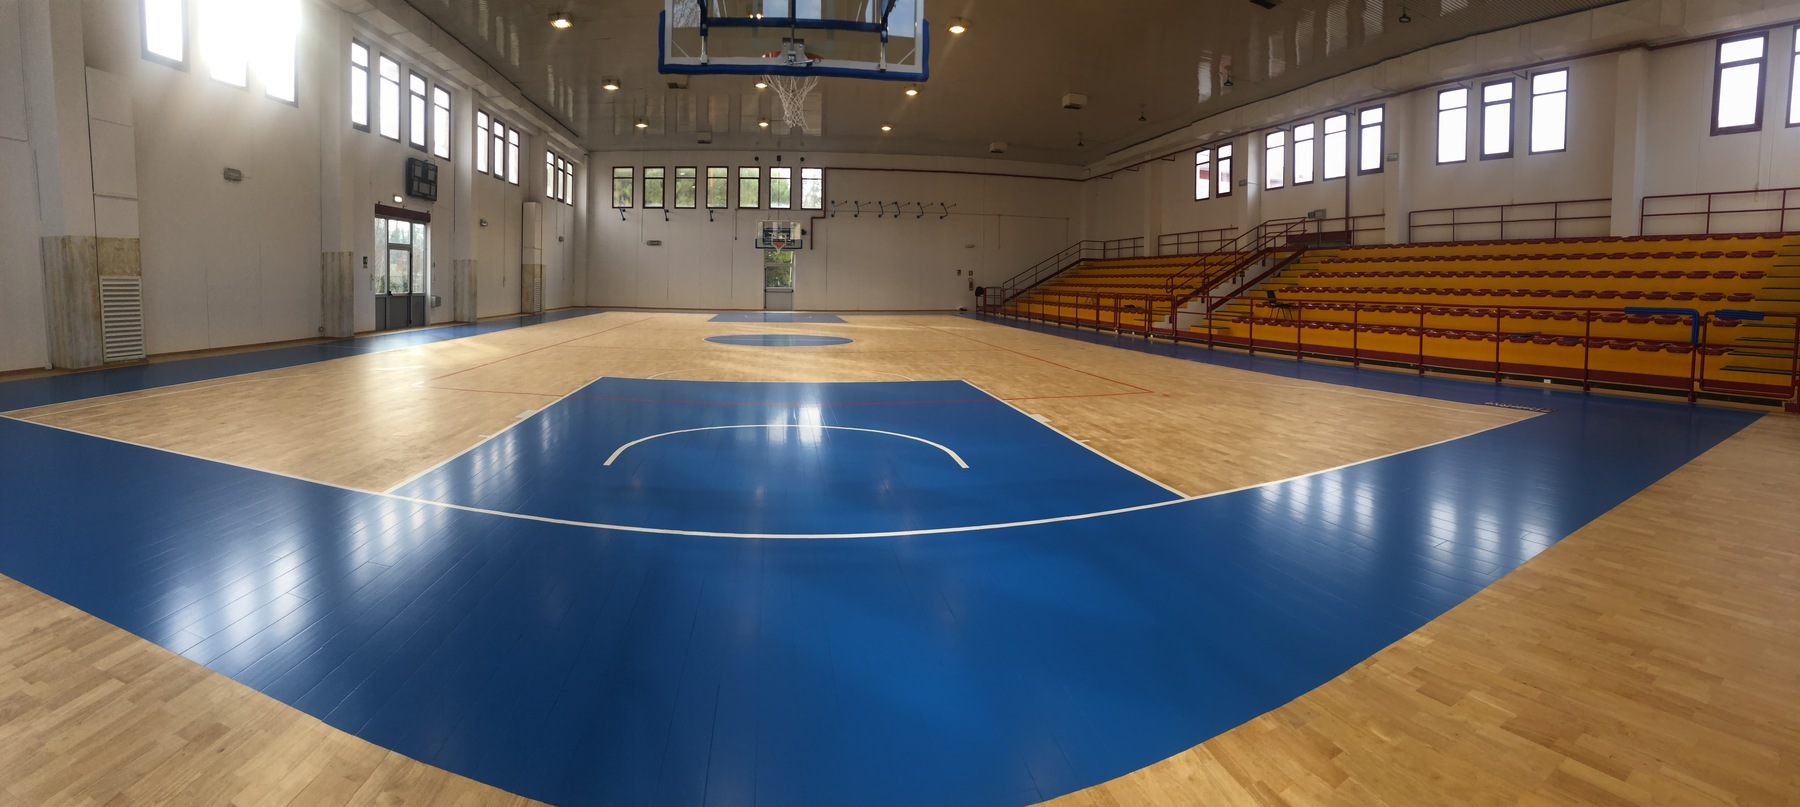 A sports floor in solid wood